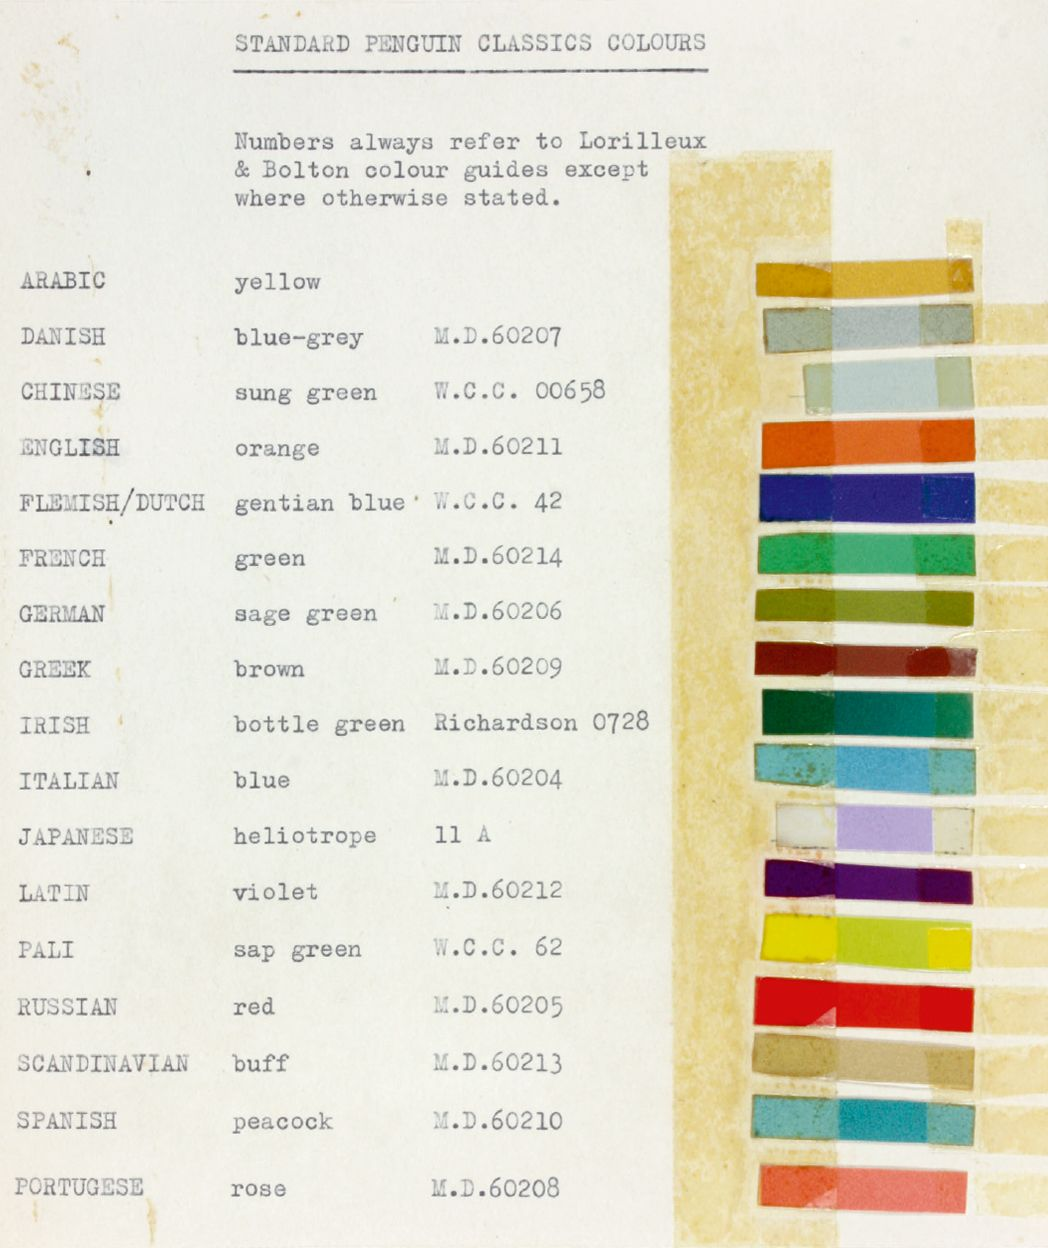 List of colours for Penguin Classics